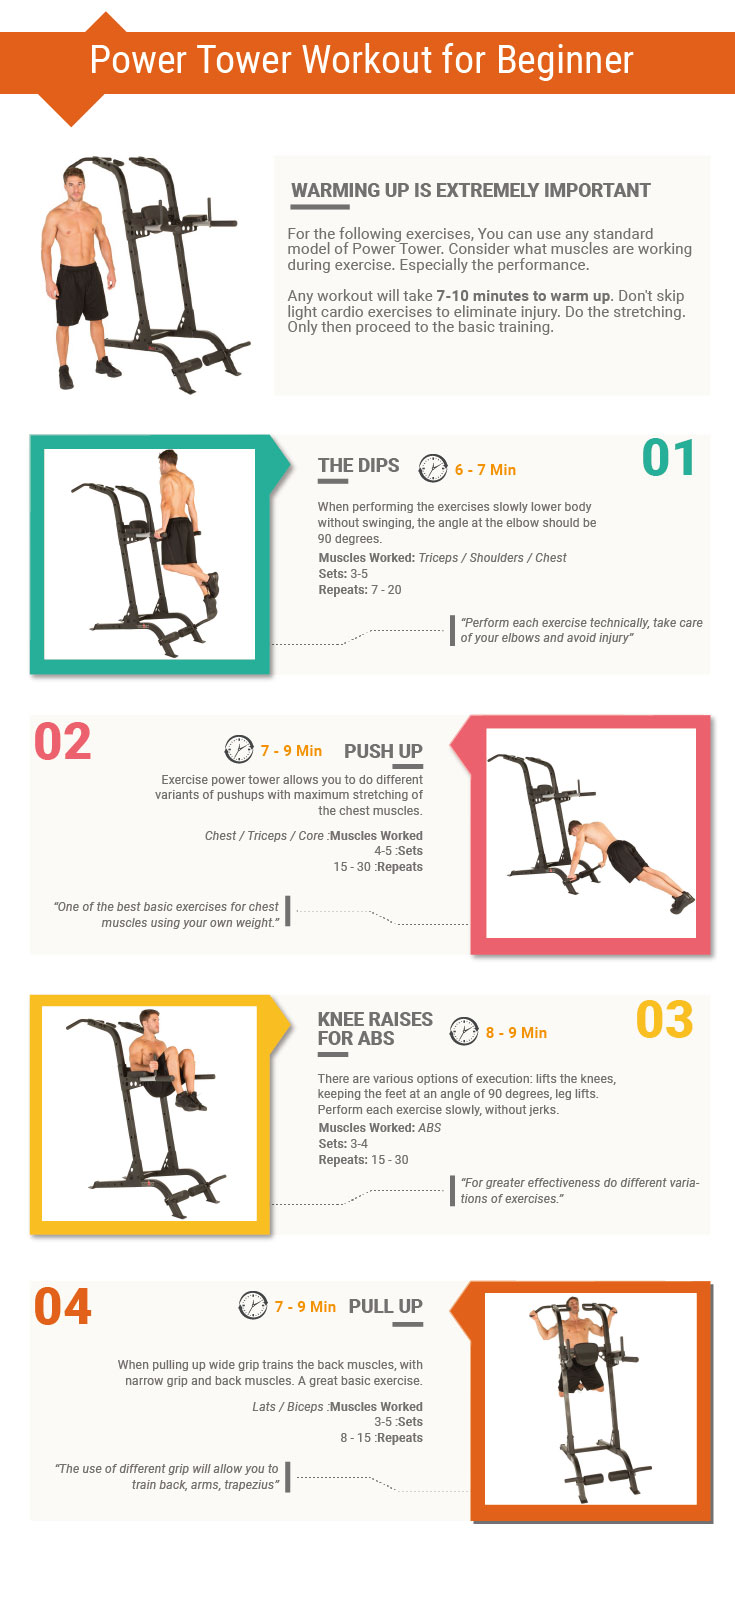 Power Tower Workout Routine 2018 Best 4 Exercises